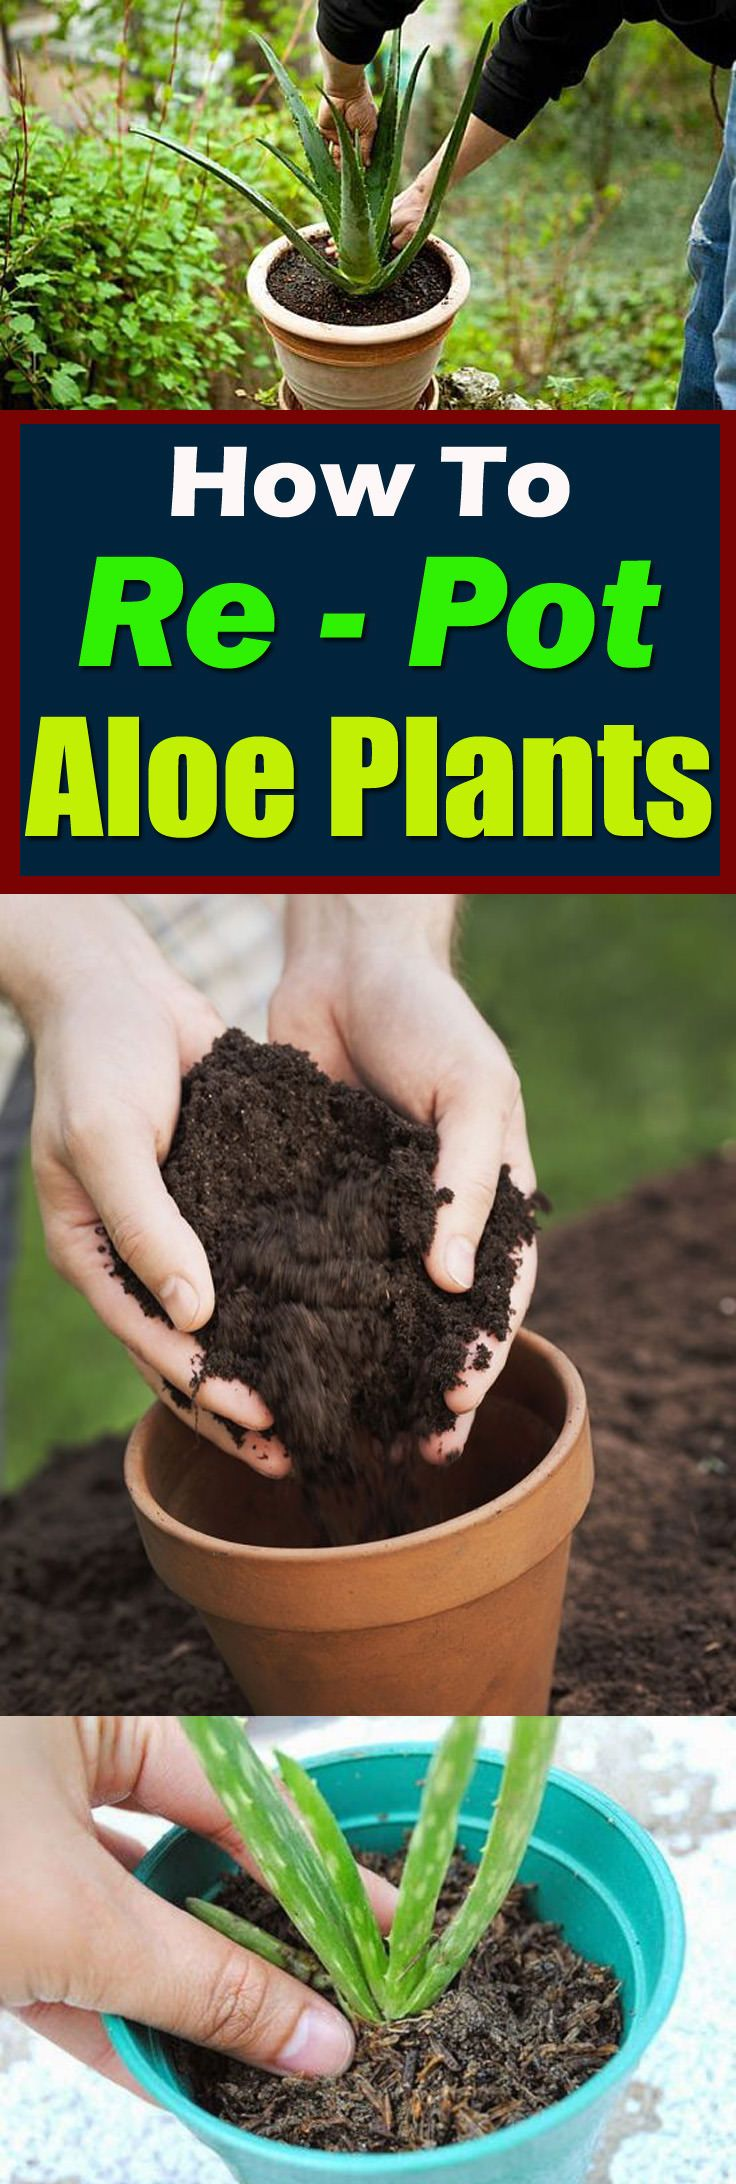 "If you've got clump-forming succulent plants, this informative guide on ""How to Re-pot Aloe Plants"" will help you in dividing, propagating, and repotting them!"